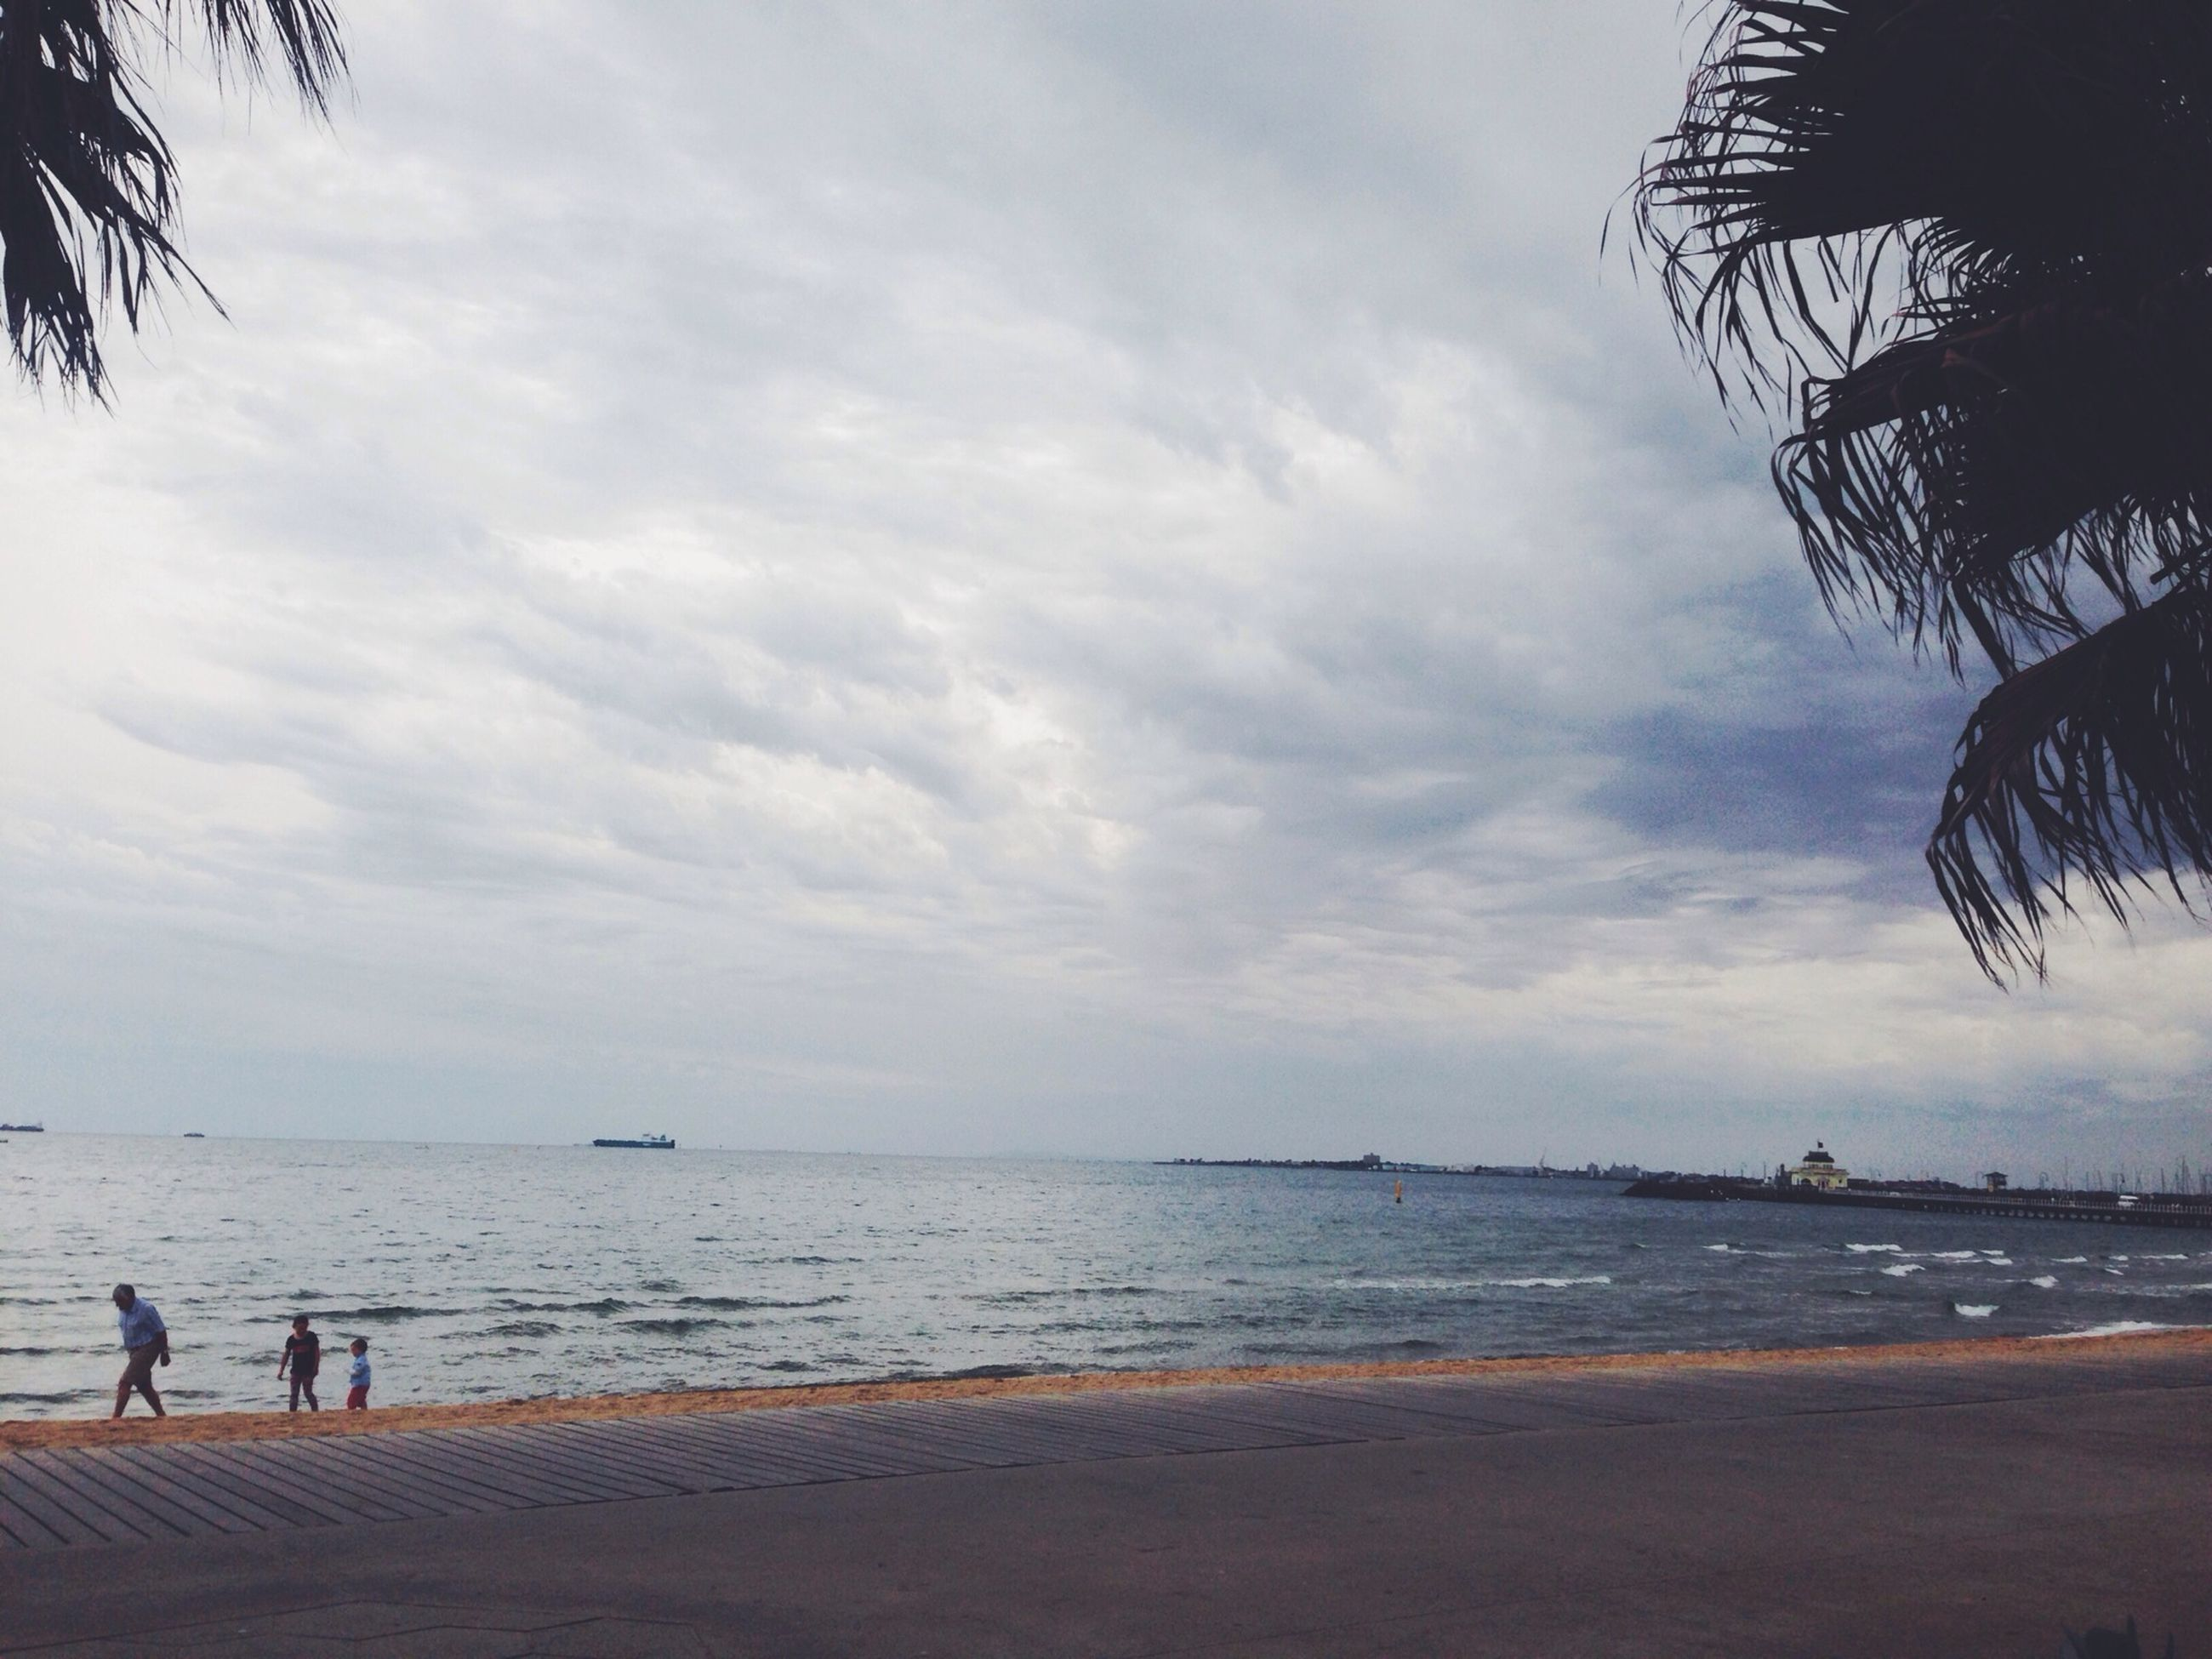 beach, sea, sky, water, horizon over water, cloud - sky, shore, cloudy, scenics, sand, tranquil scene, tranquility, beauty in nature, cloud, nature, tree, palm tree, incidental people, vacations